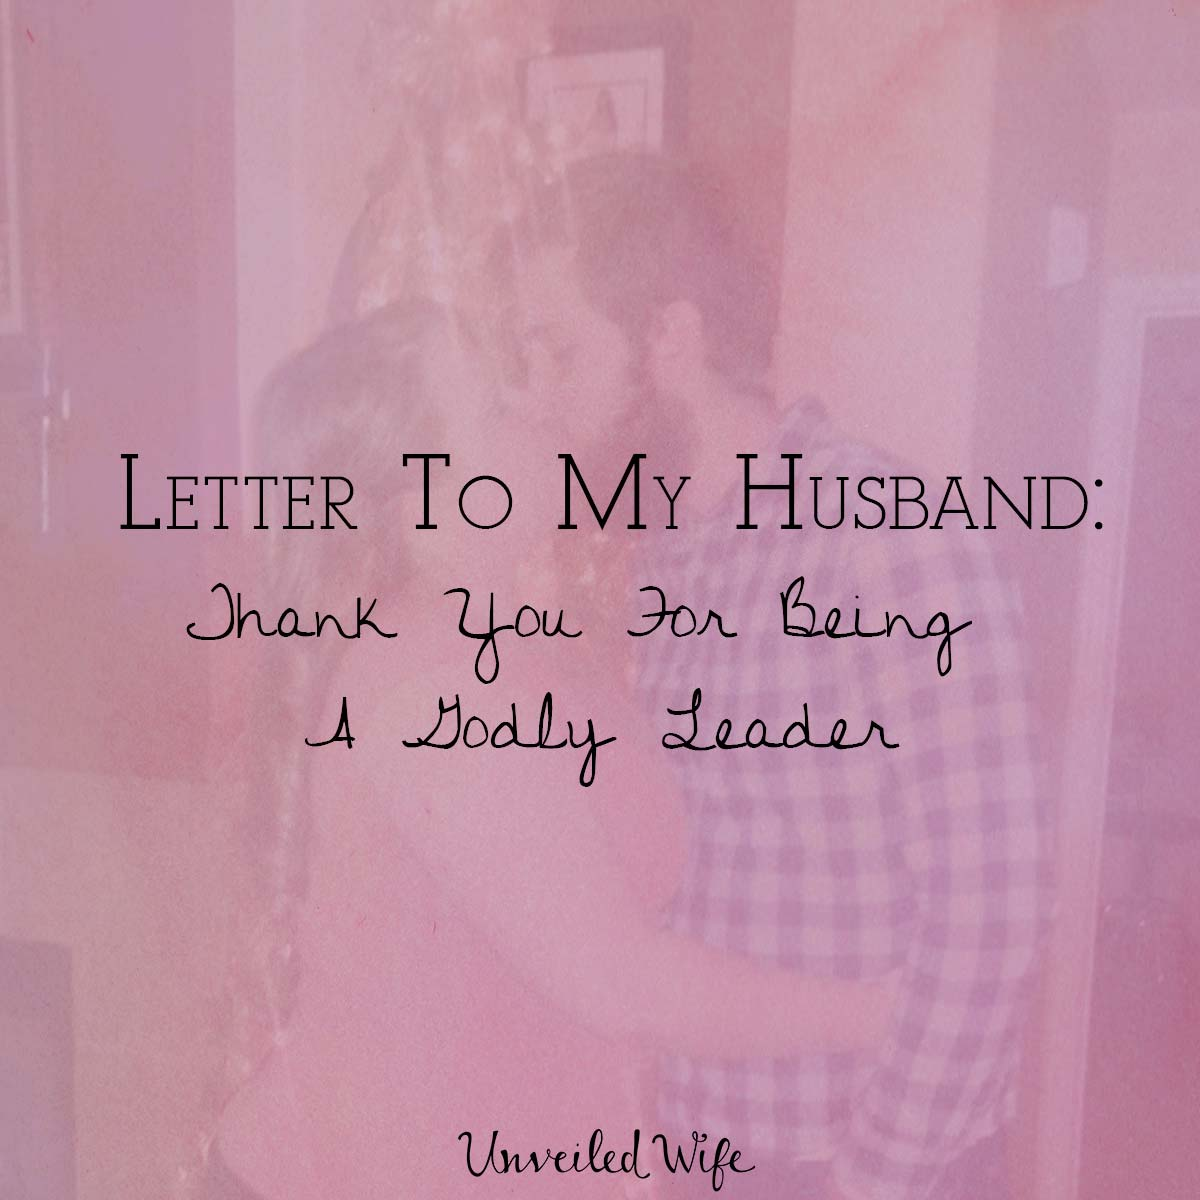 Letter To My Husband Thank You For Being A Godly Leader